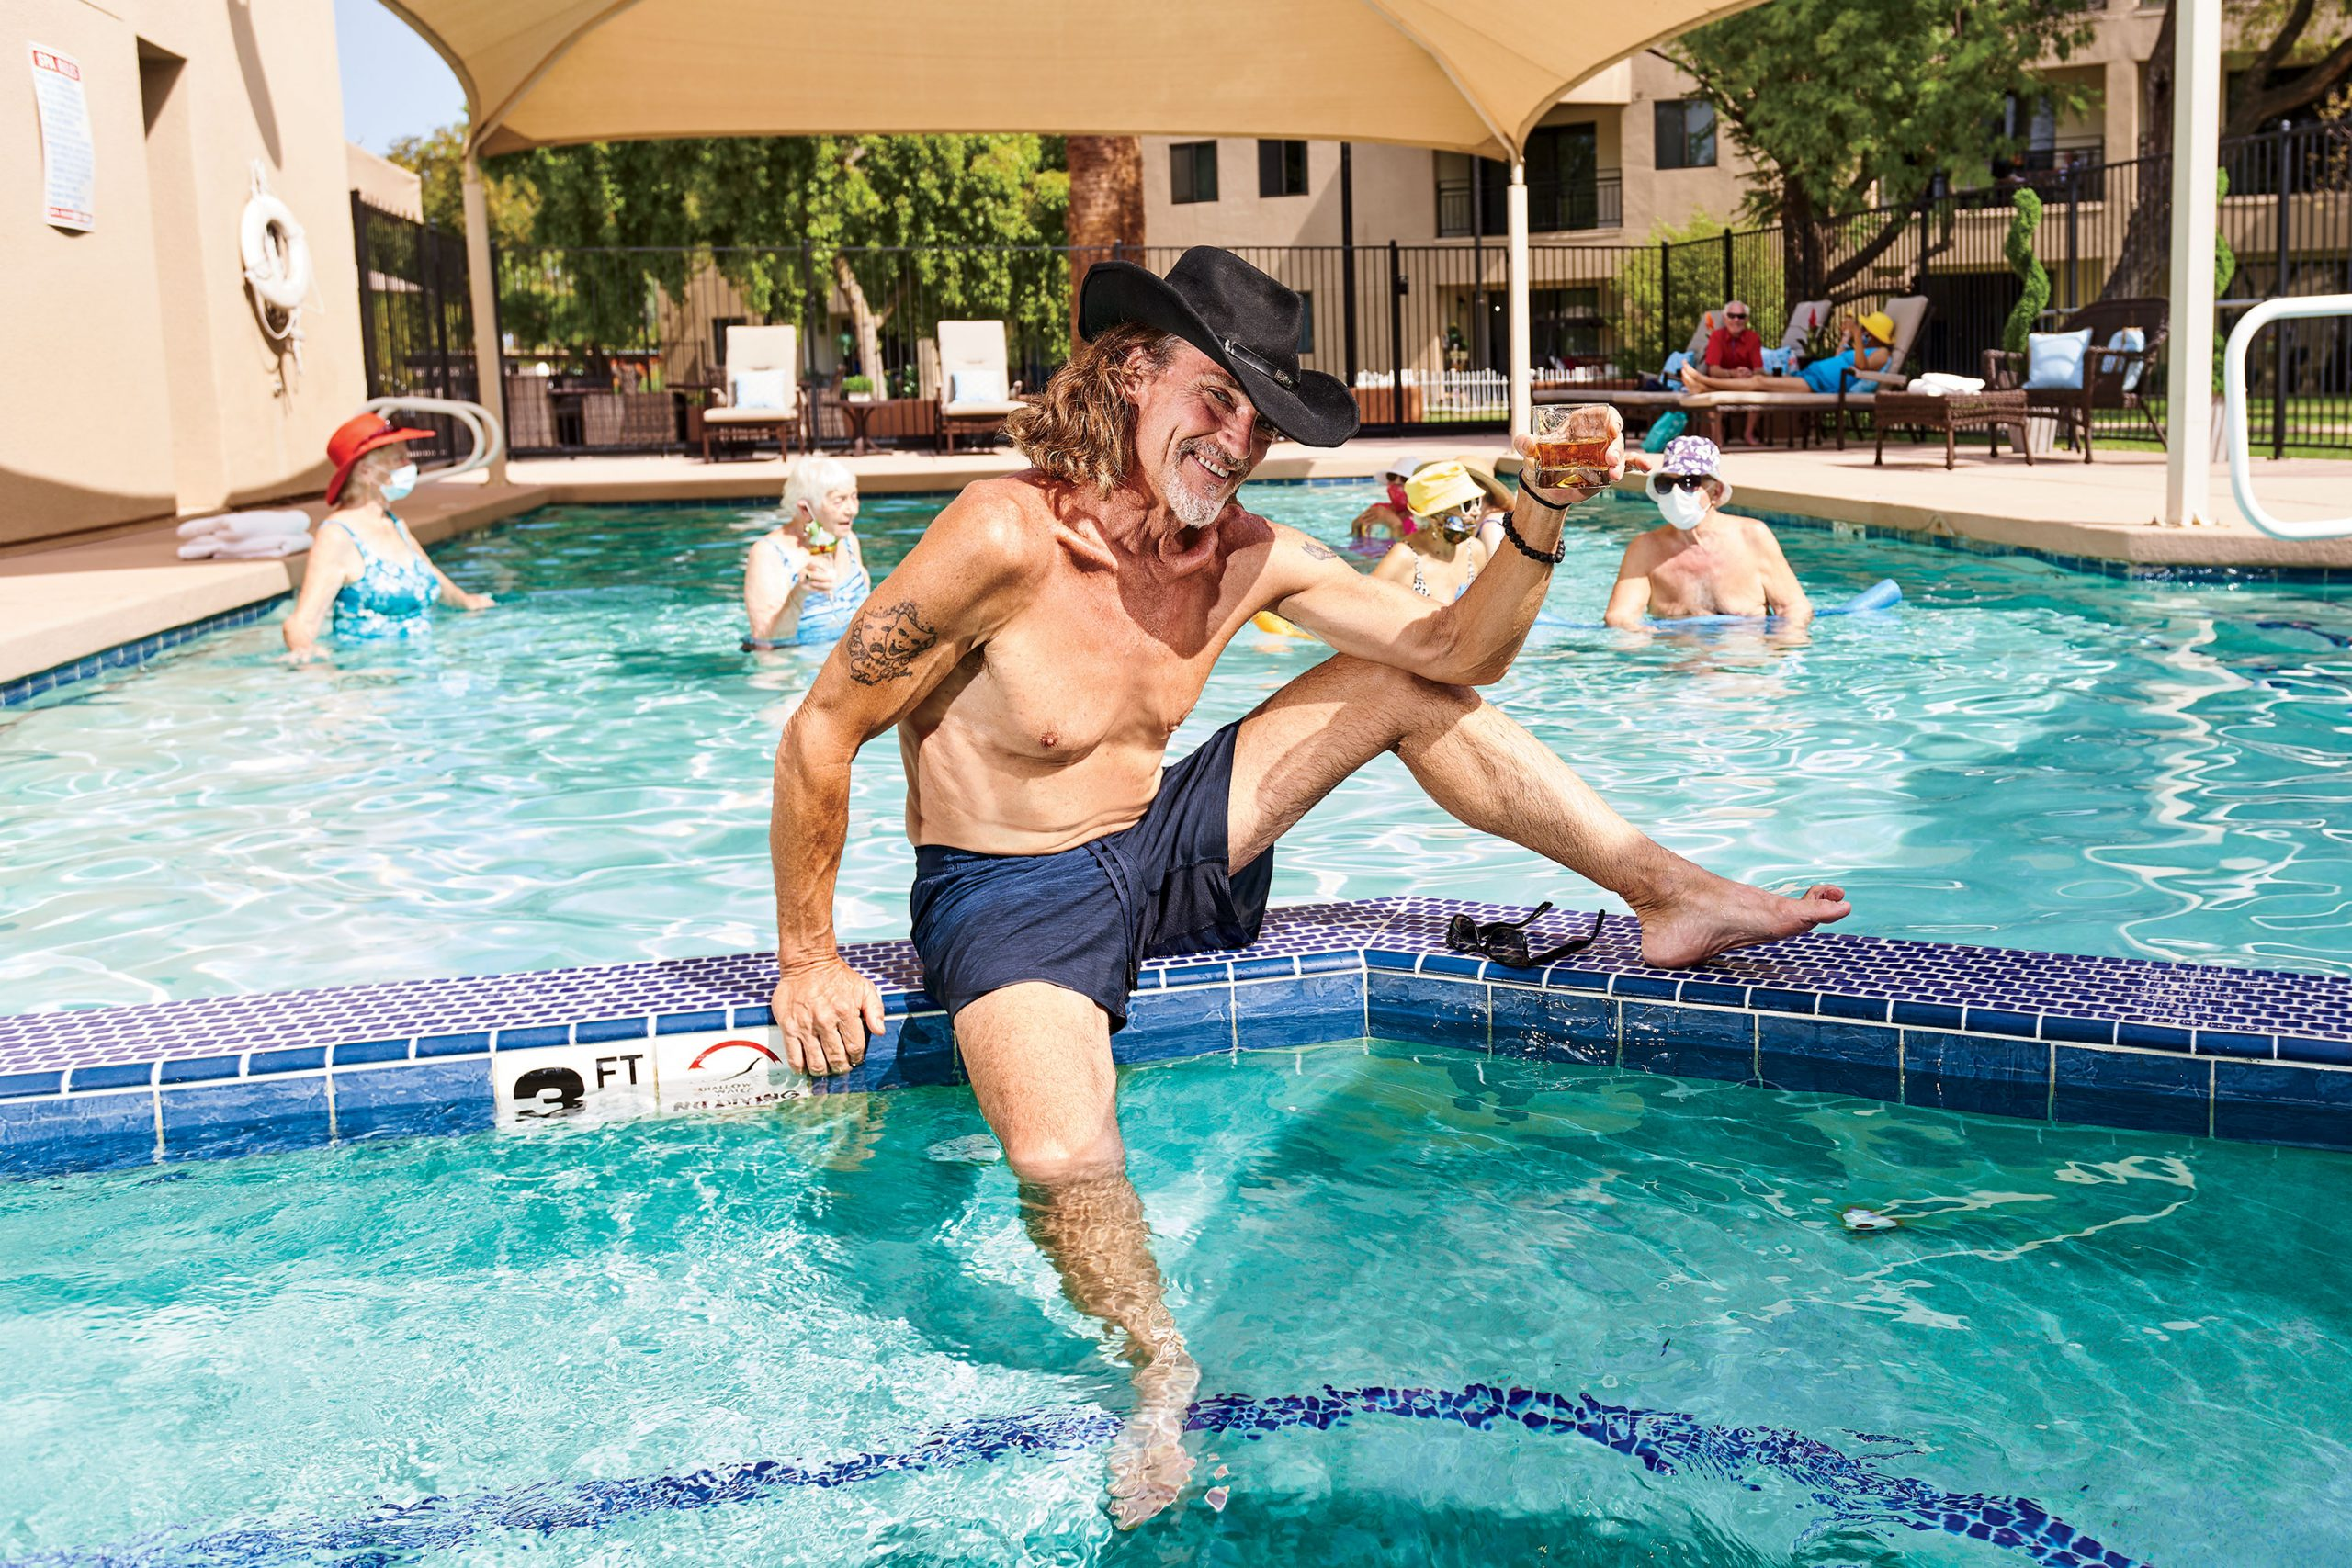 Soakin' up a day of retirement with sun-loving residents at the pool of The Palazzo senior living.; Original photography by Camerawerks